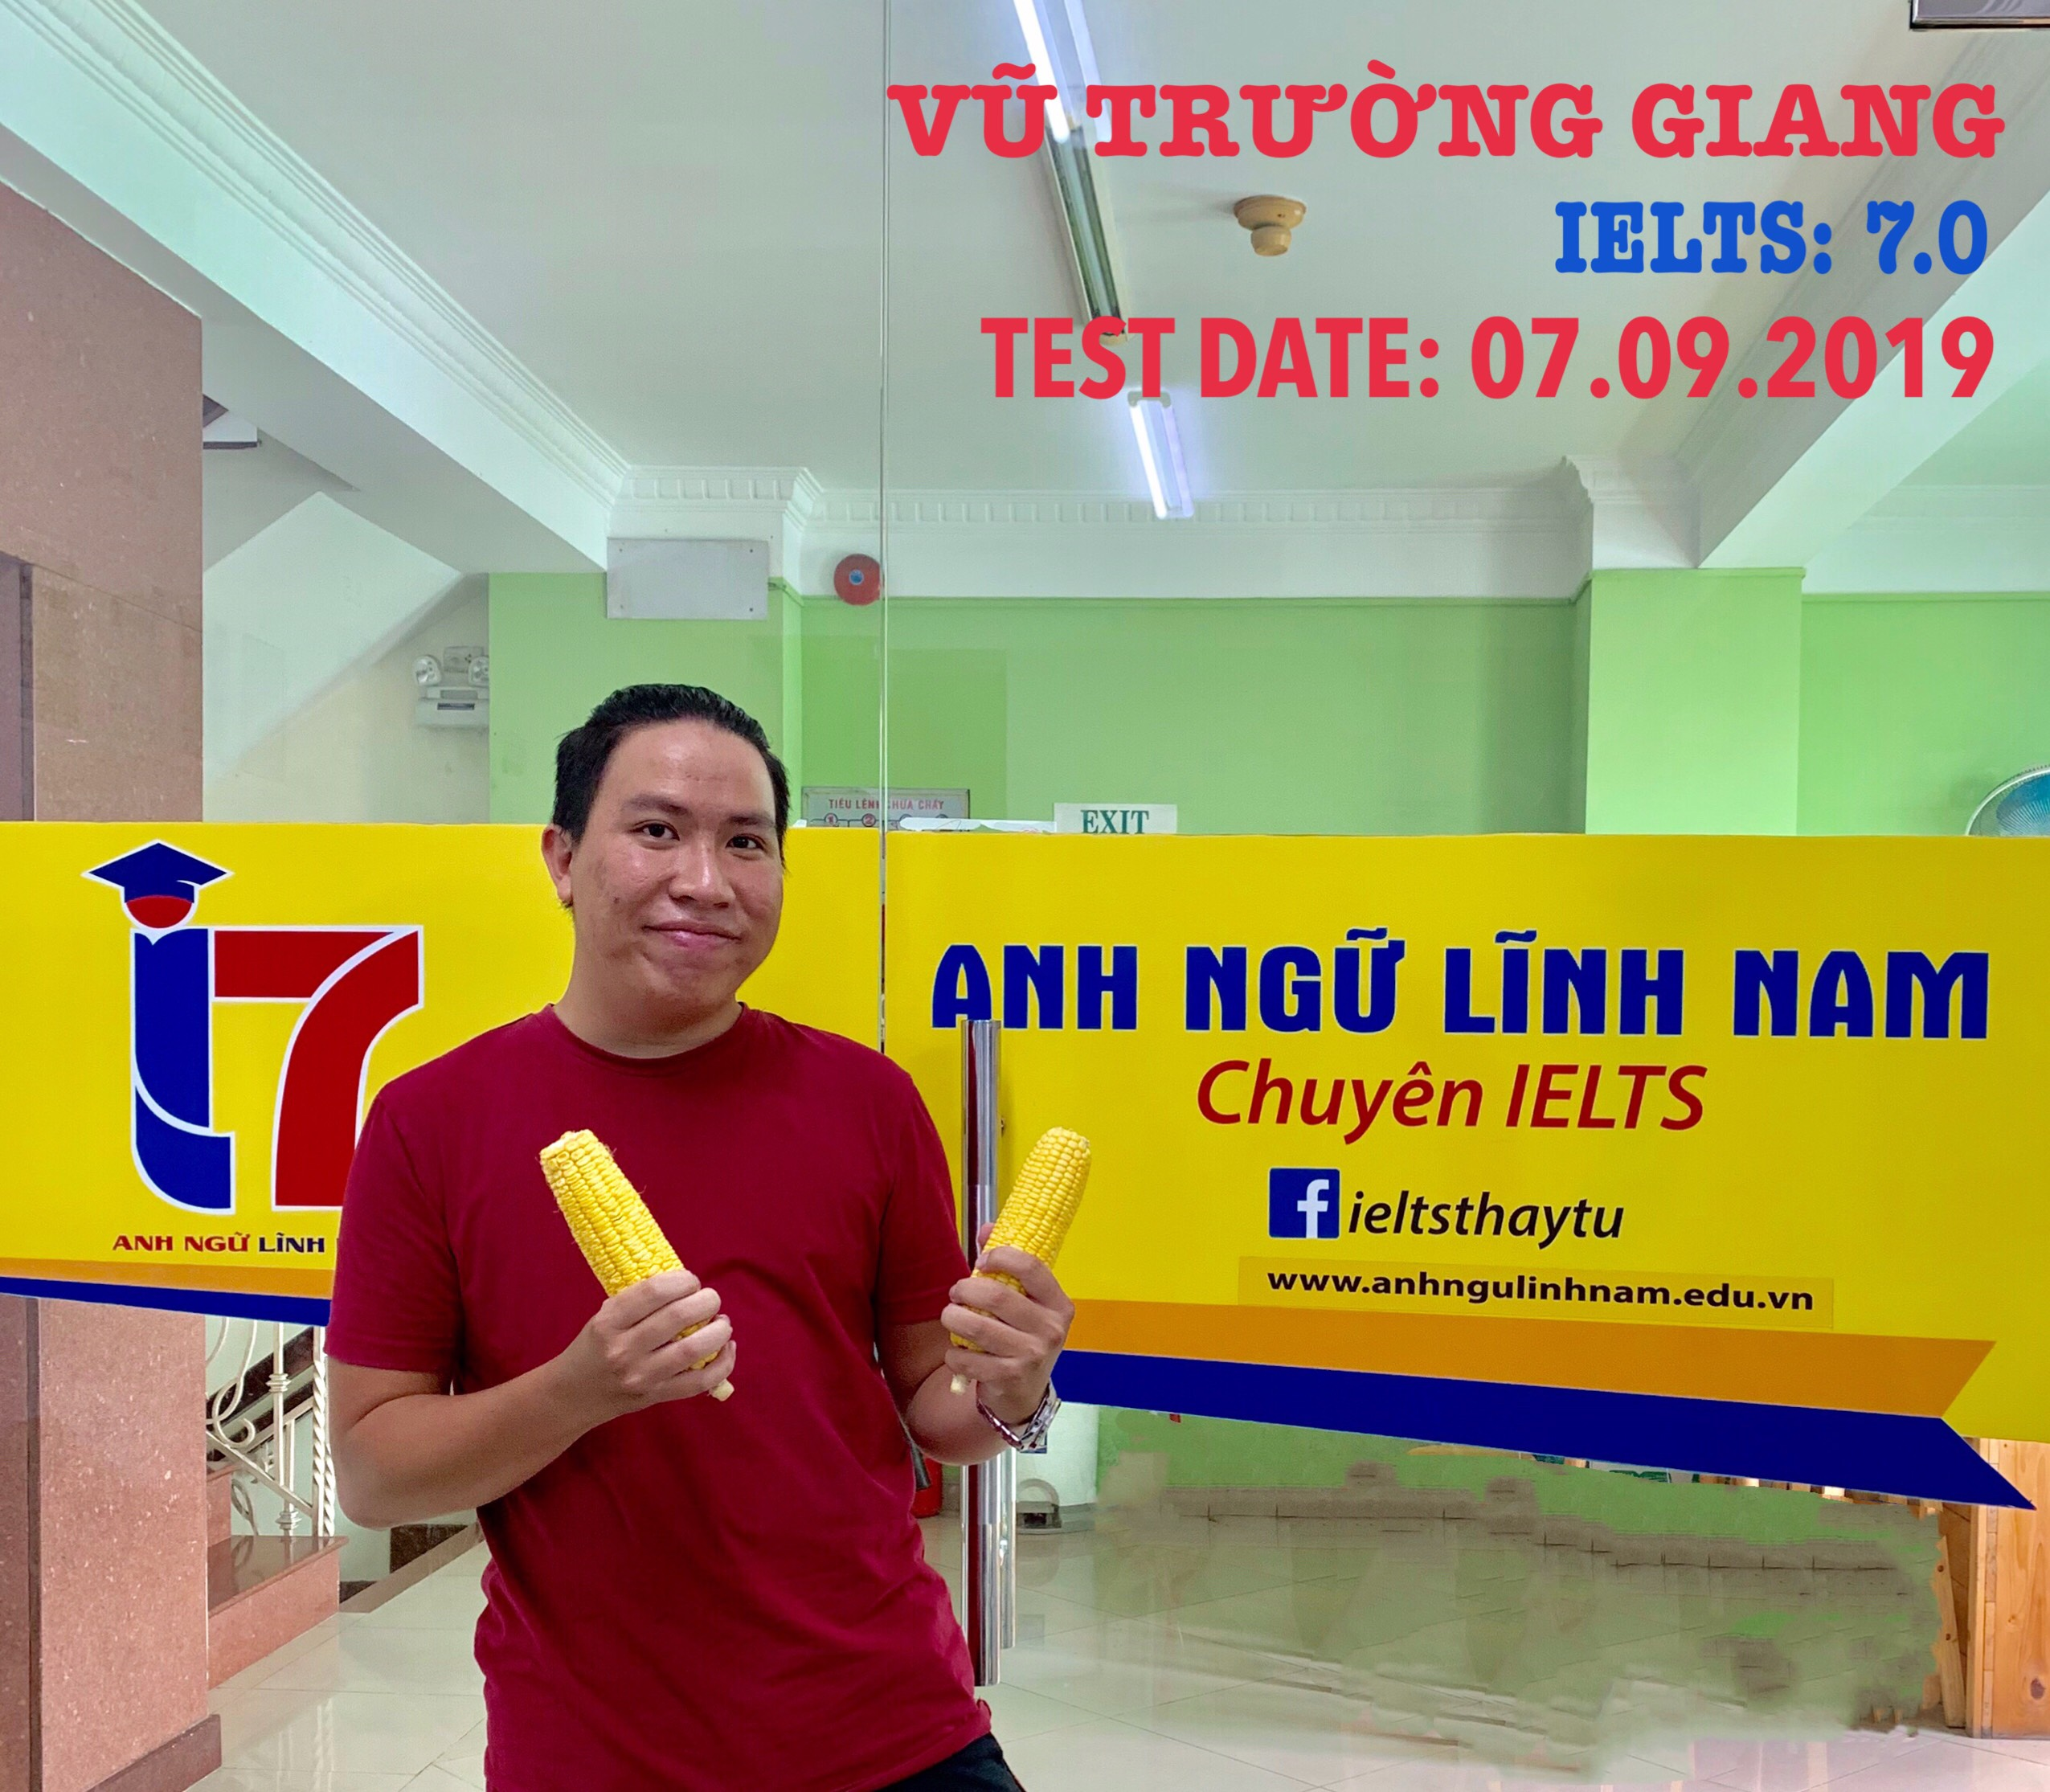 TRƯỜNG GIANG-7.0-07.09.2019